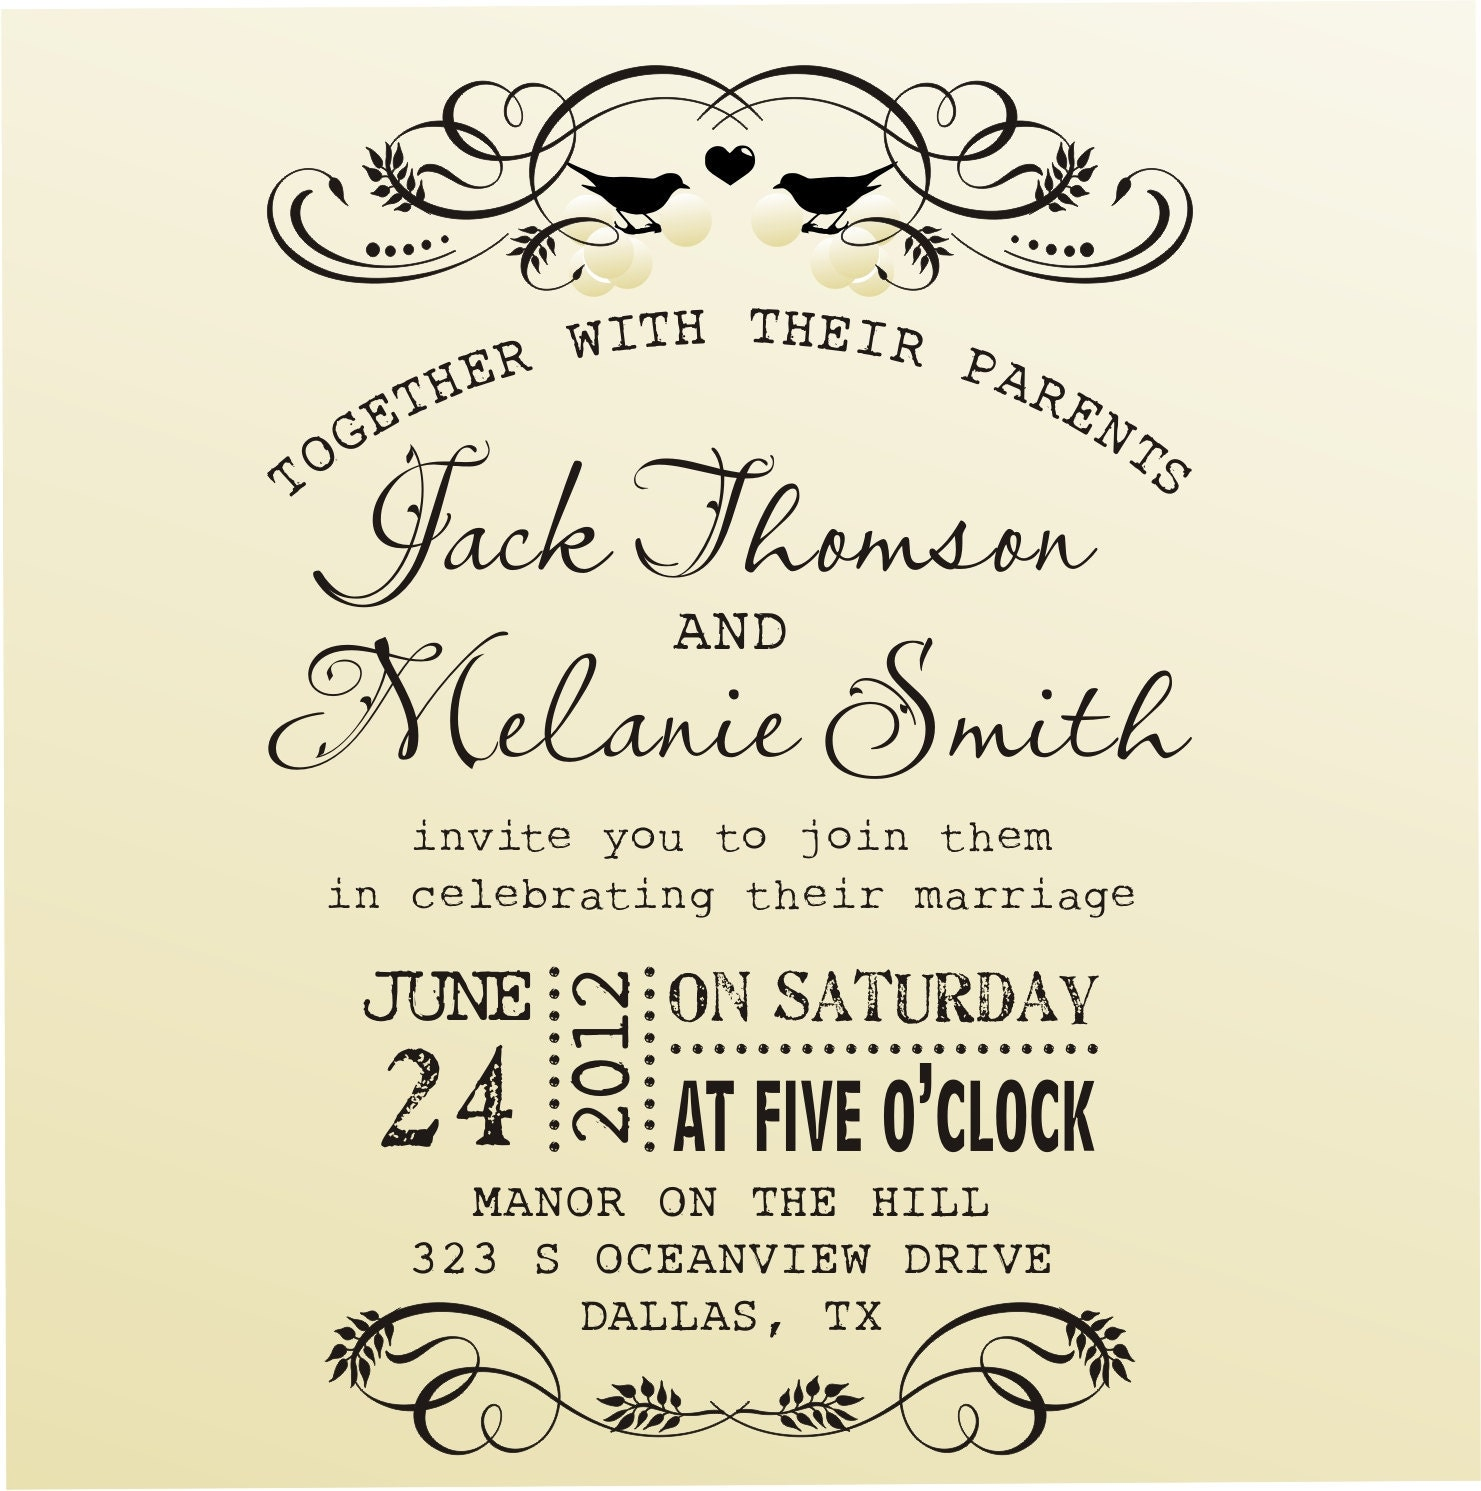 Handwritten Wedding Invites with perfect invitations design